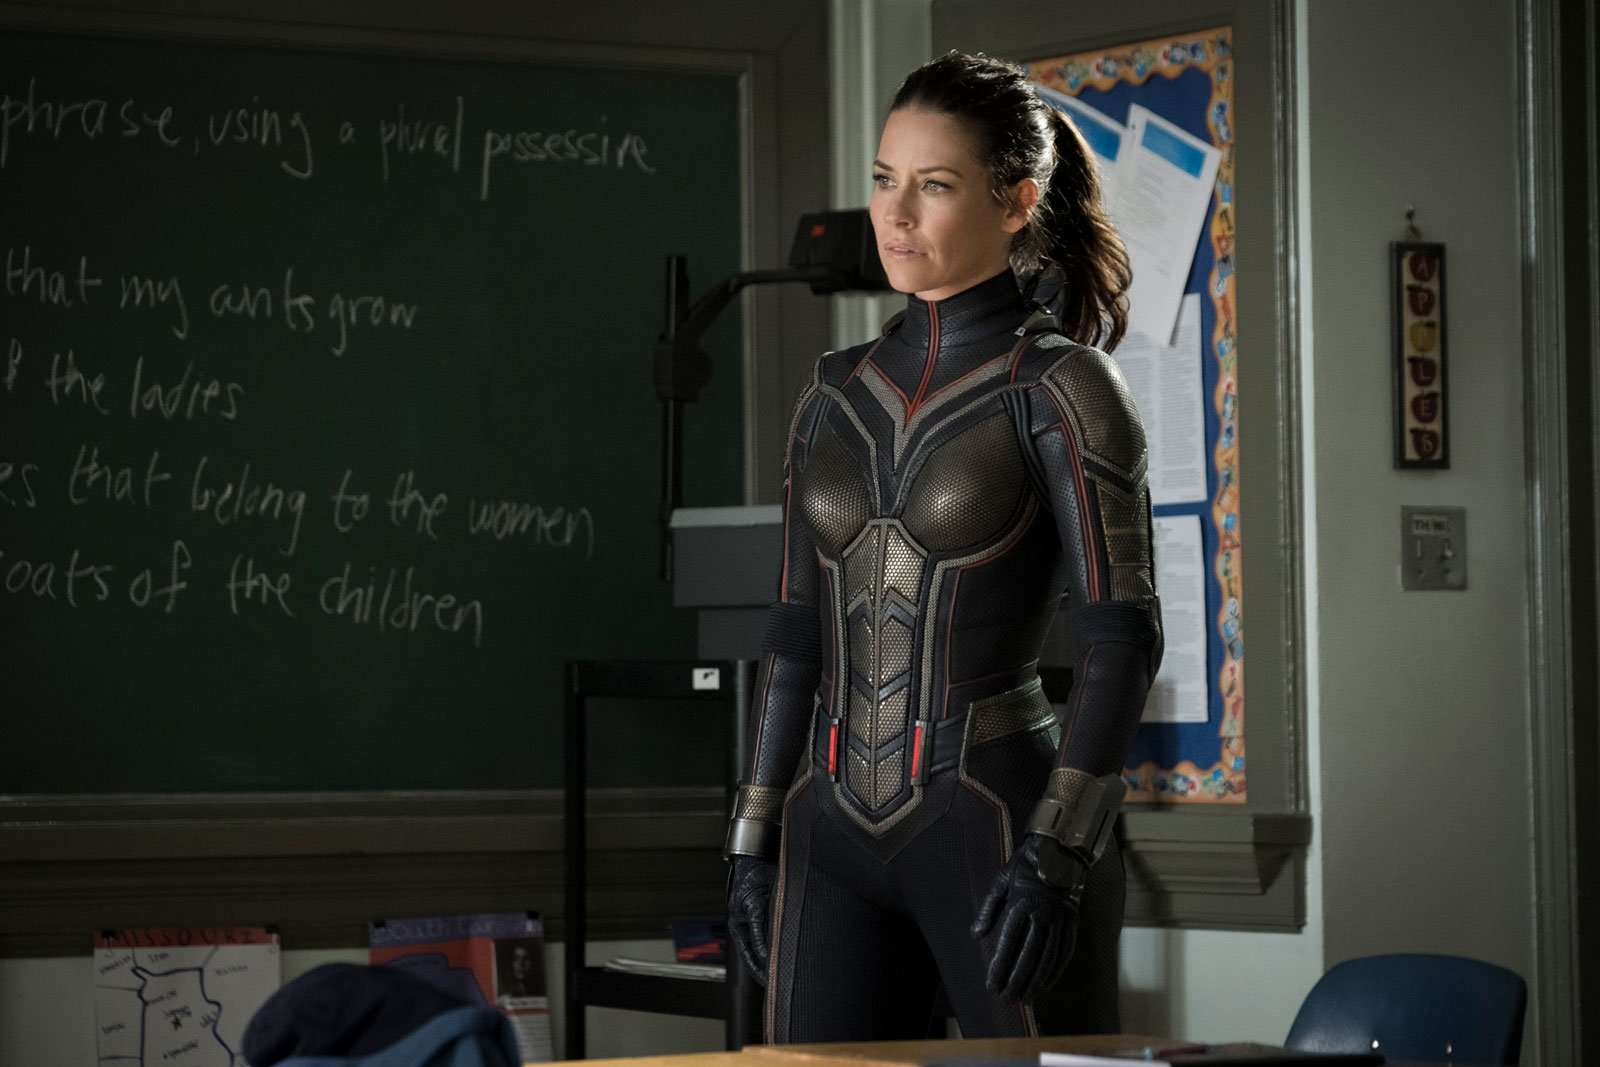 Evangeline-Lilly-Wasp-film-Ant-Man.jpg